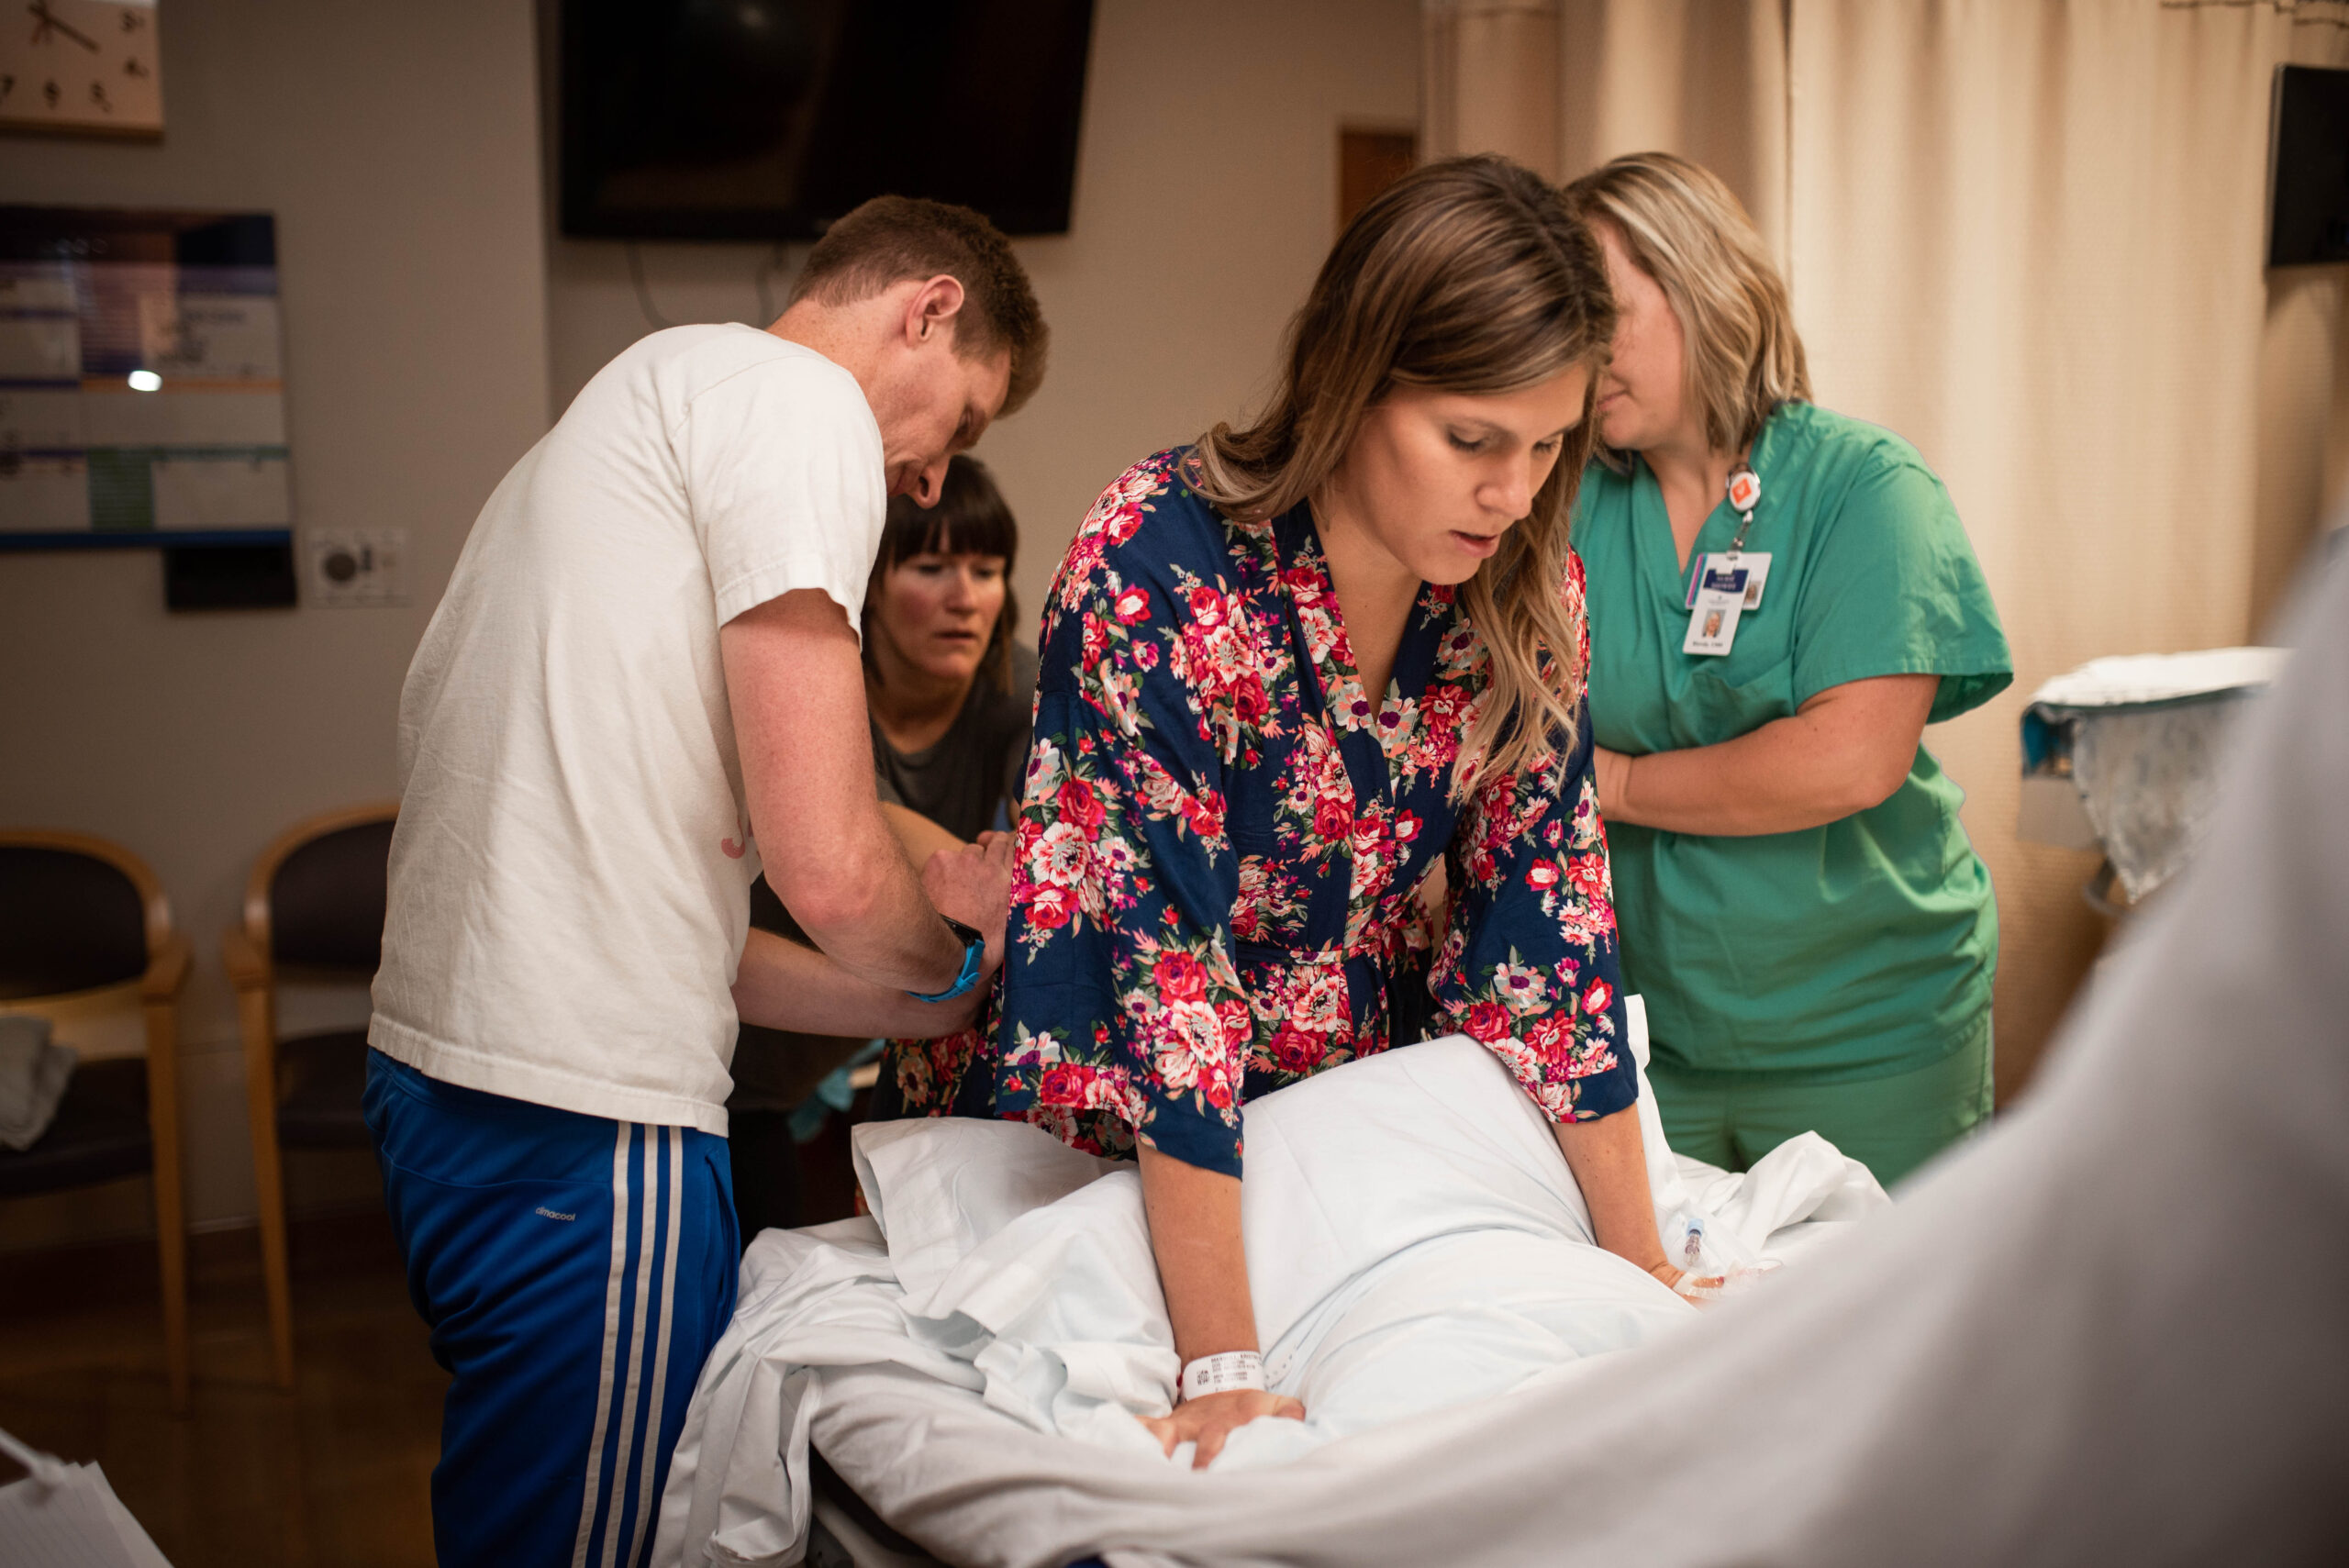 Utah mom in labor while husband, doula and midwife apply counter pressure on her hips